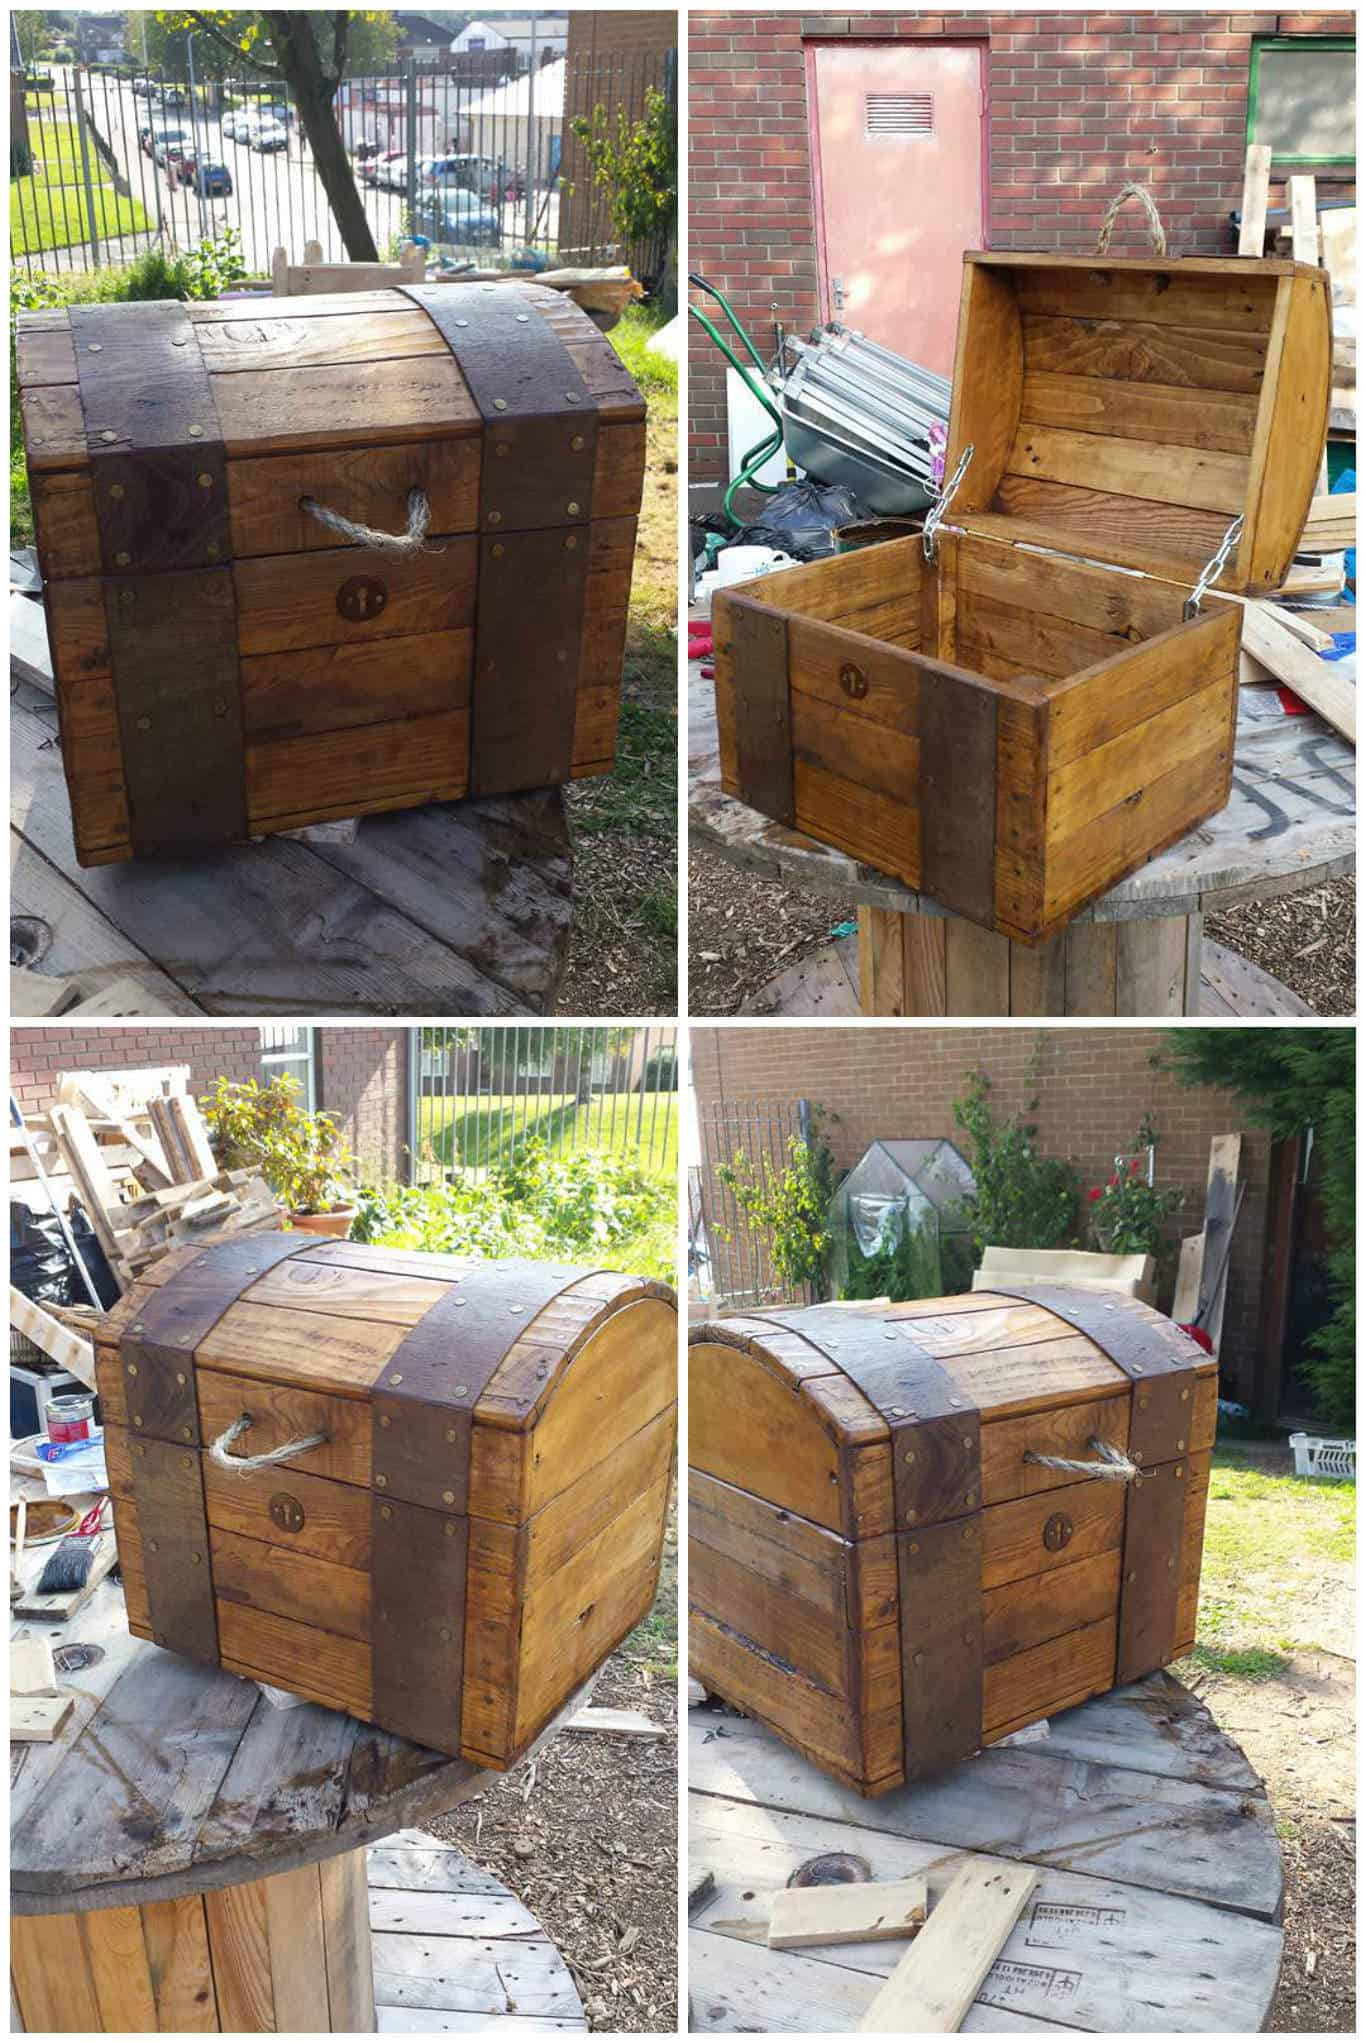 Treasure Chest Out of Repurposed Pallet Wood • Pallet Ideas • 1001 Pallets